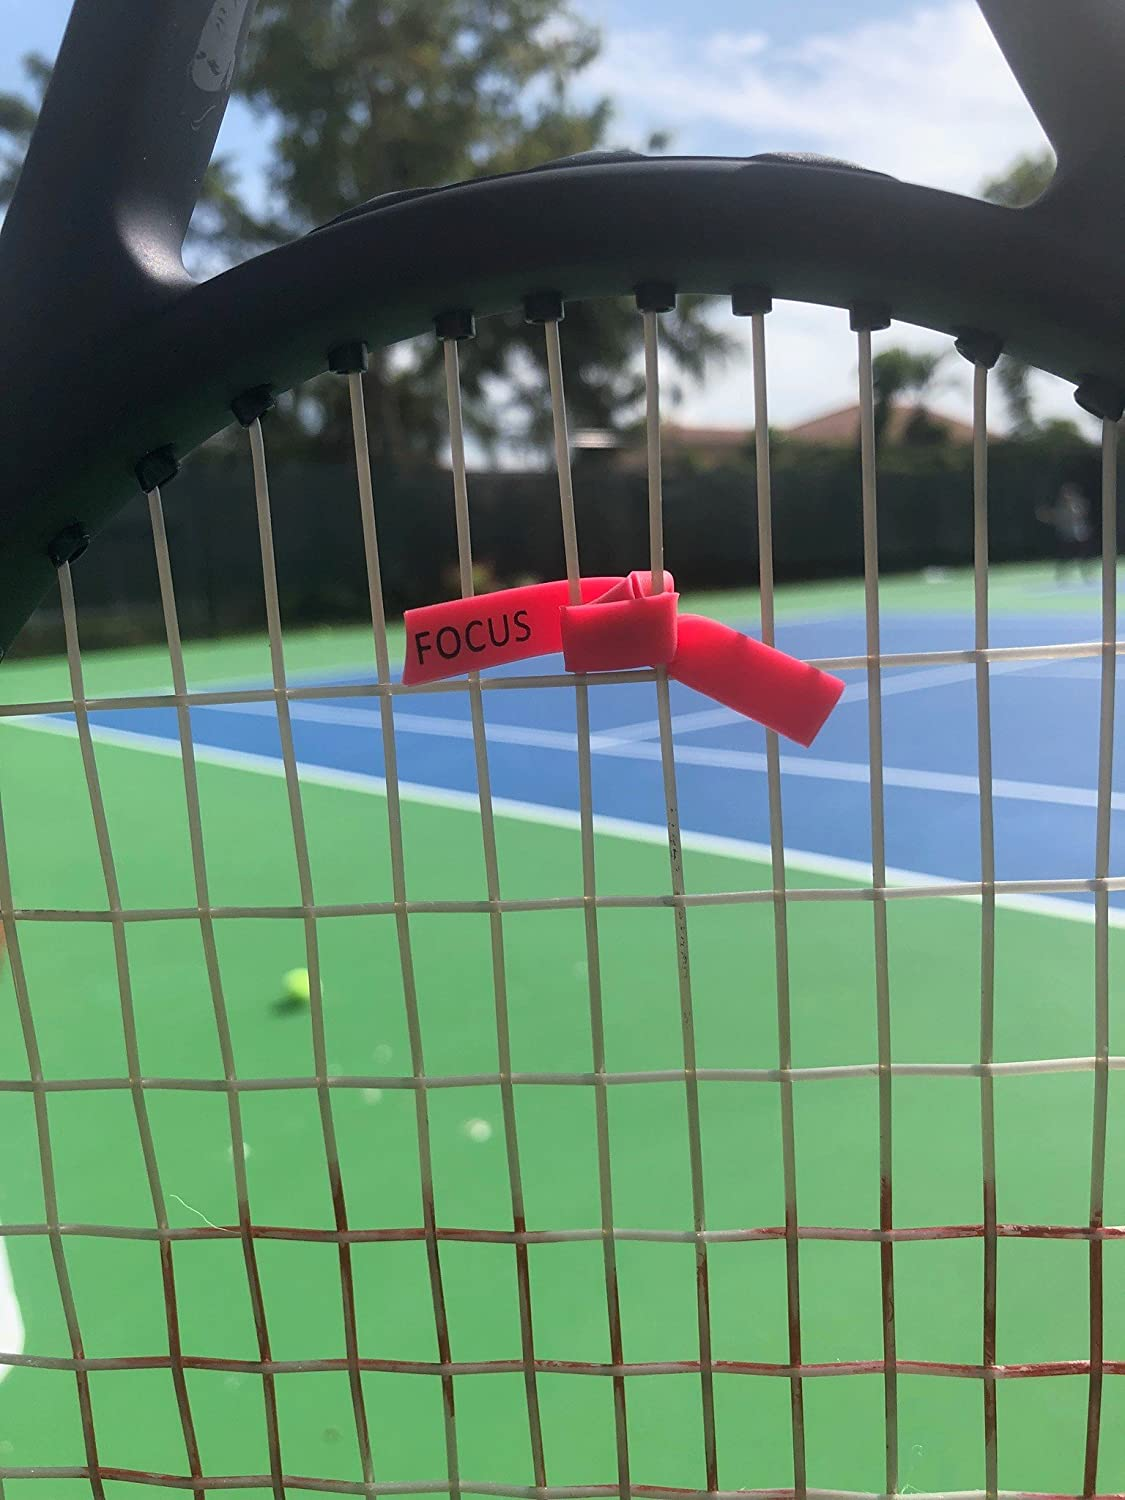 Vibraband Tennis Vibration Dampener Absorbs Shock from Racquetball /& Squash Rackets Pack of 3